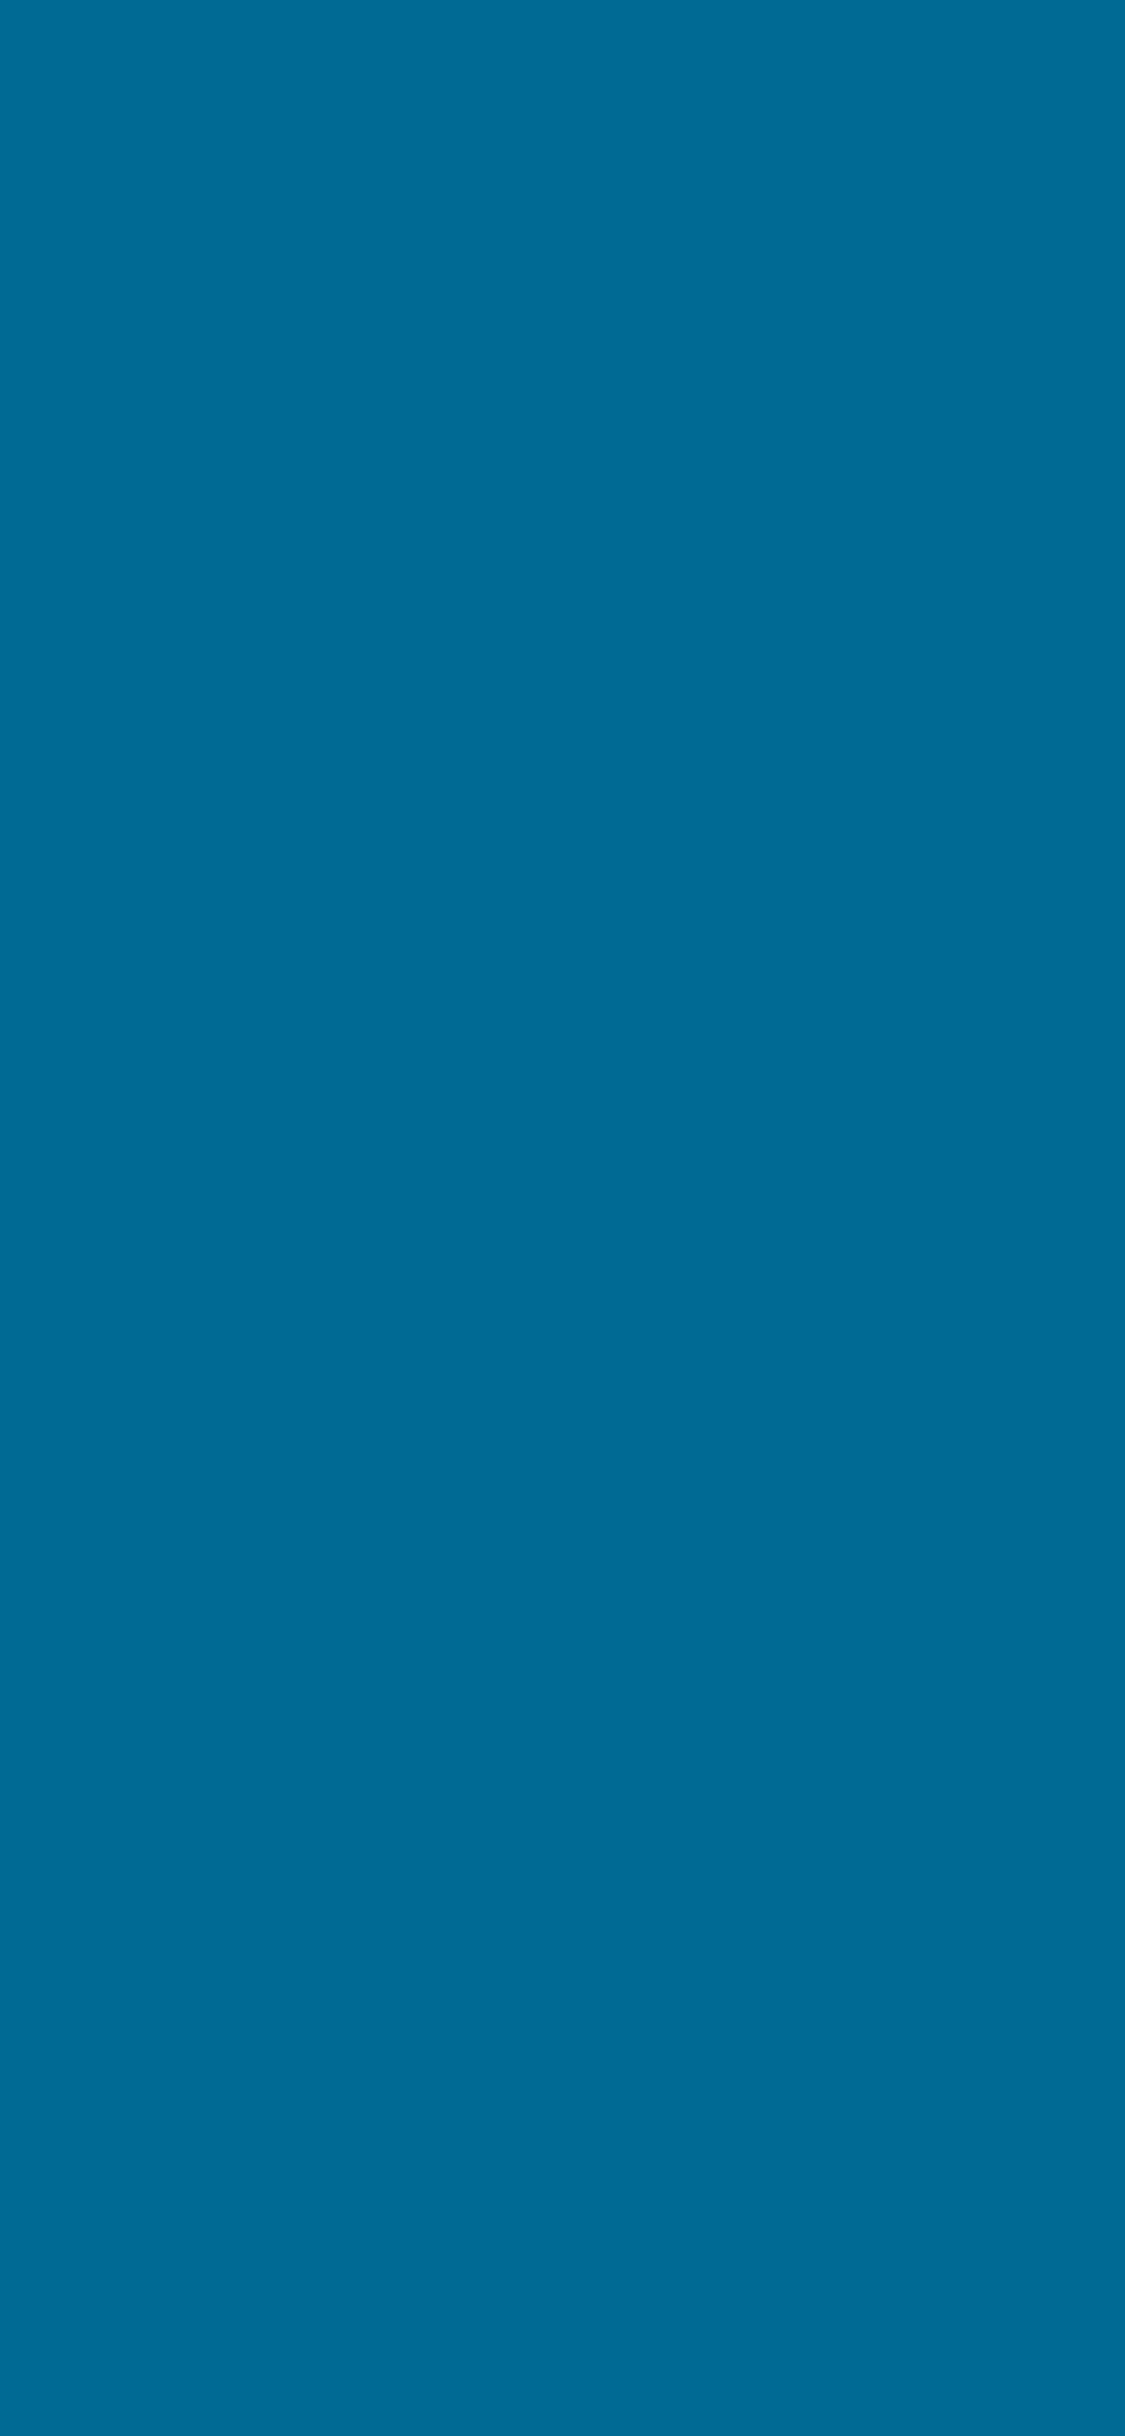 1125x2436 Sea Blue Solid Color Background